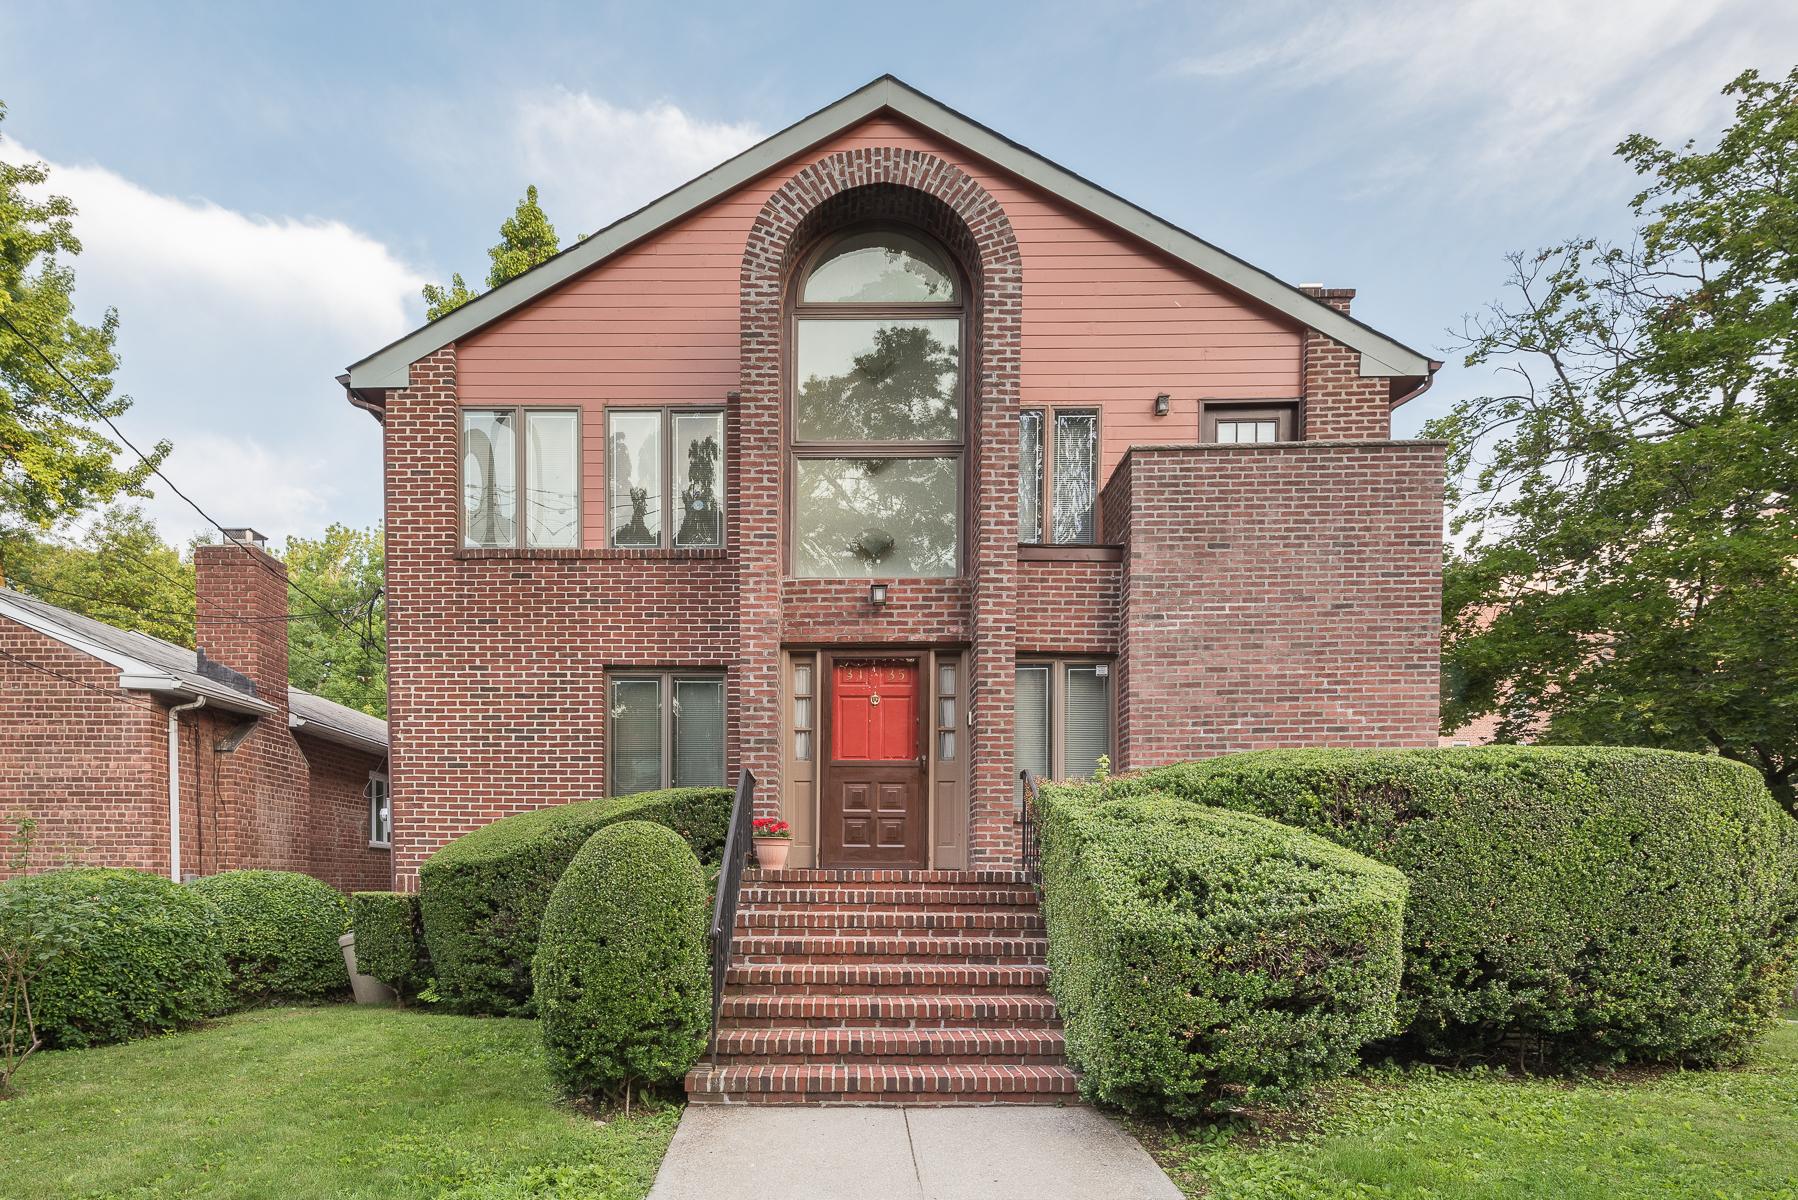 Casa Unifamiliar por un Venta en Detached Corner Brick House 3135 Arlington Avenue Riverdale, Nueva York 10463 Estados Unidos